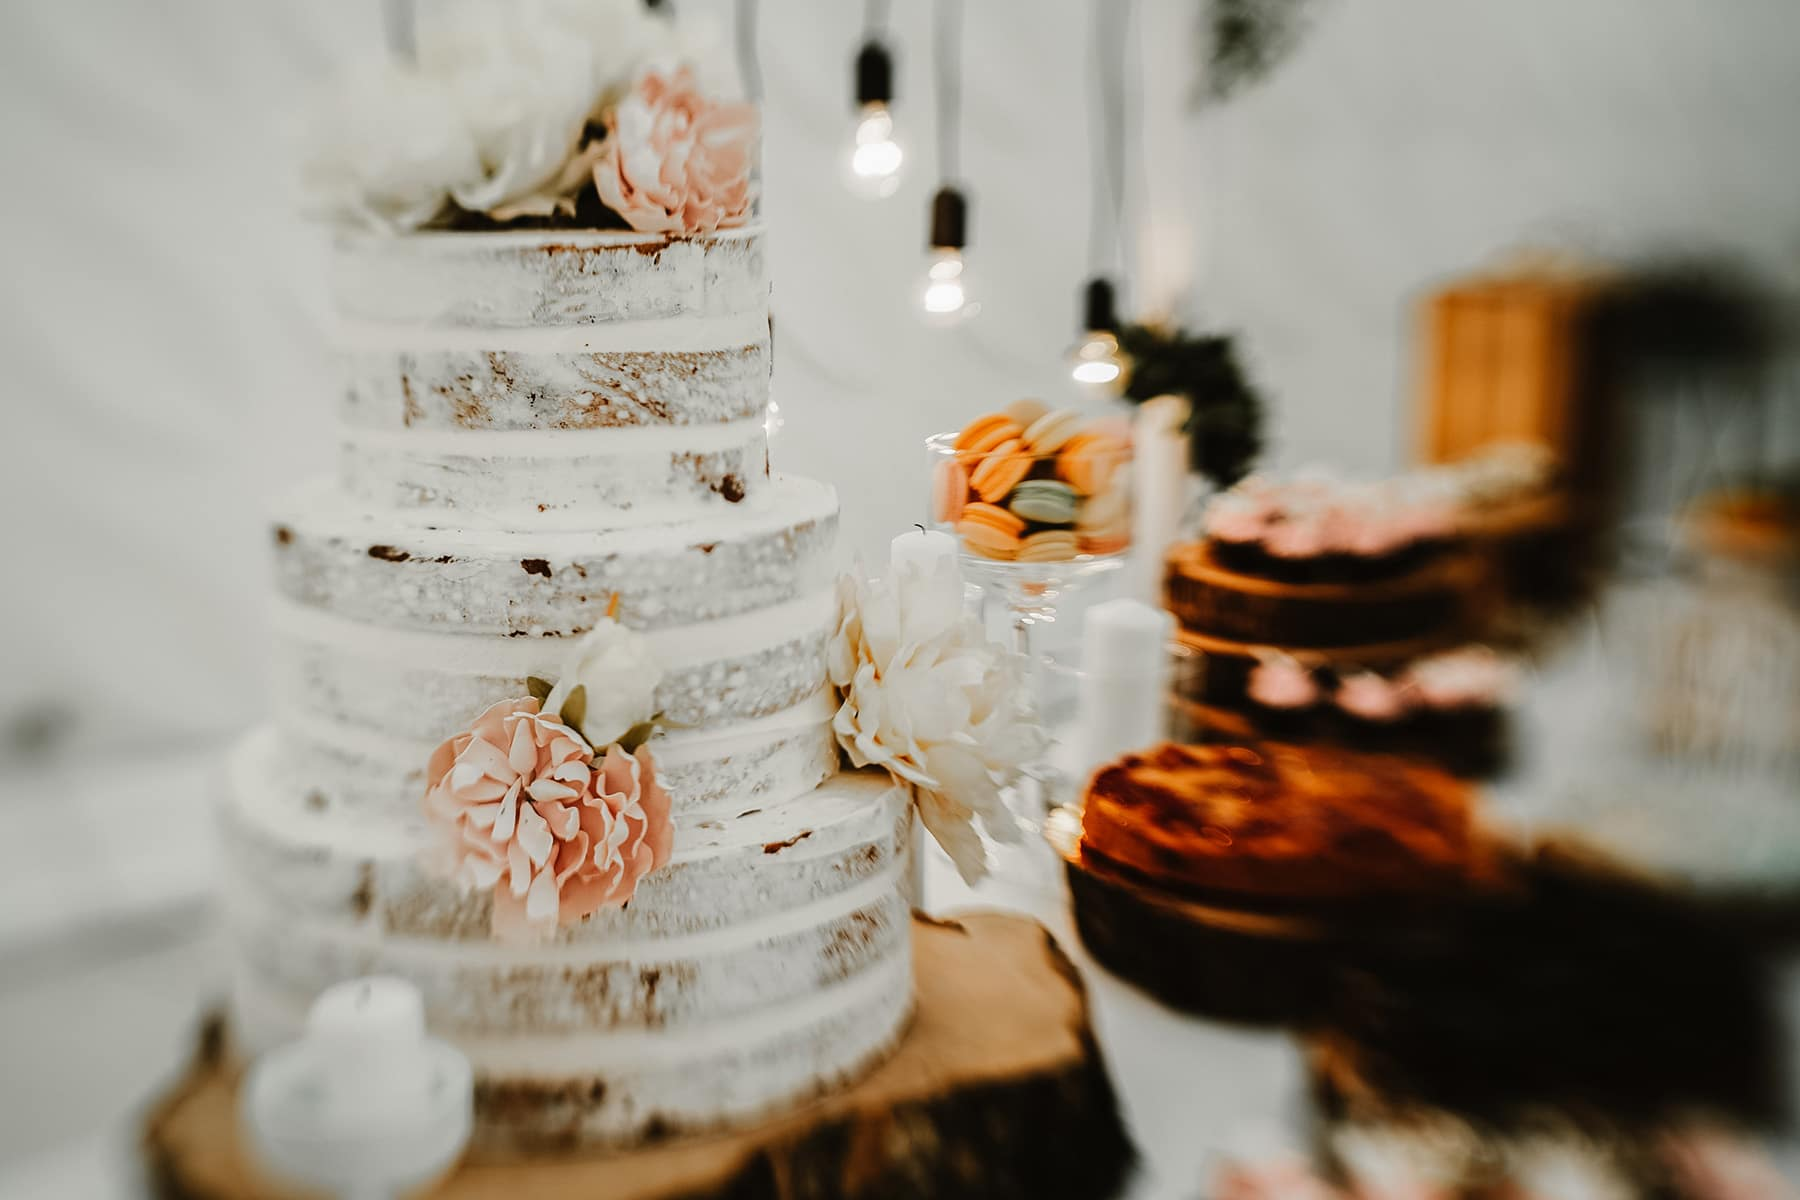 Wedding Cake Photographed with a Tilt Shift Lens